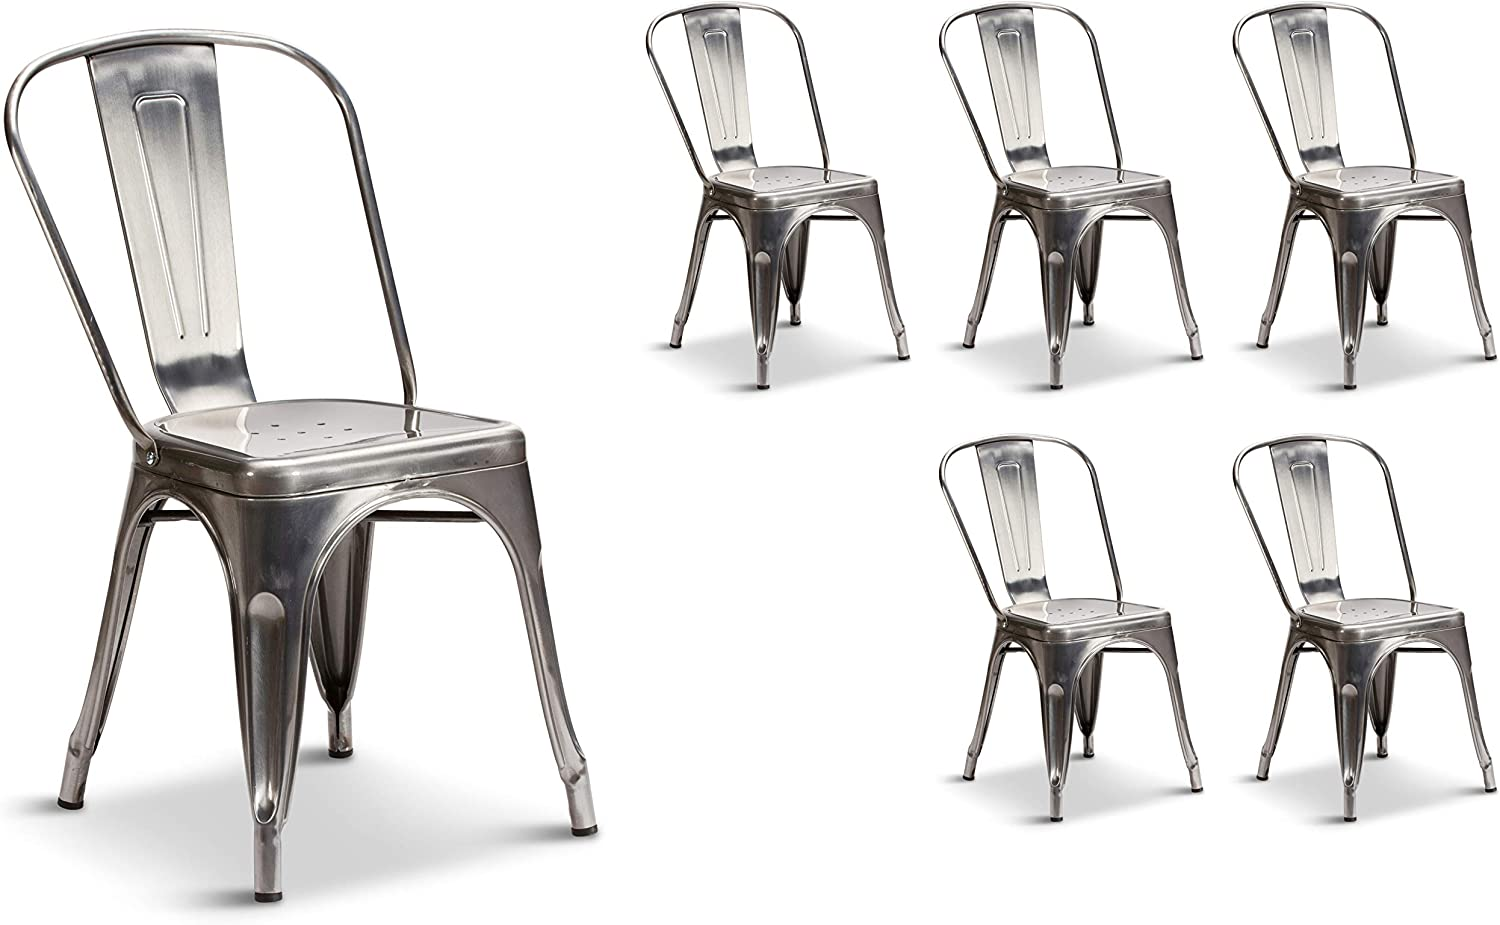 Set of 4 Steel Metal Industrial Dining Chairs Stackable Tolix